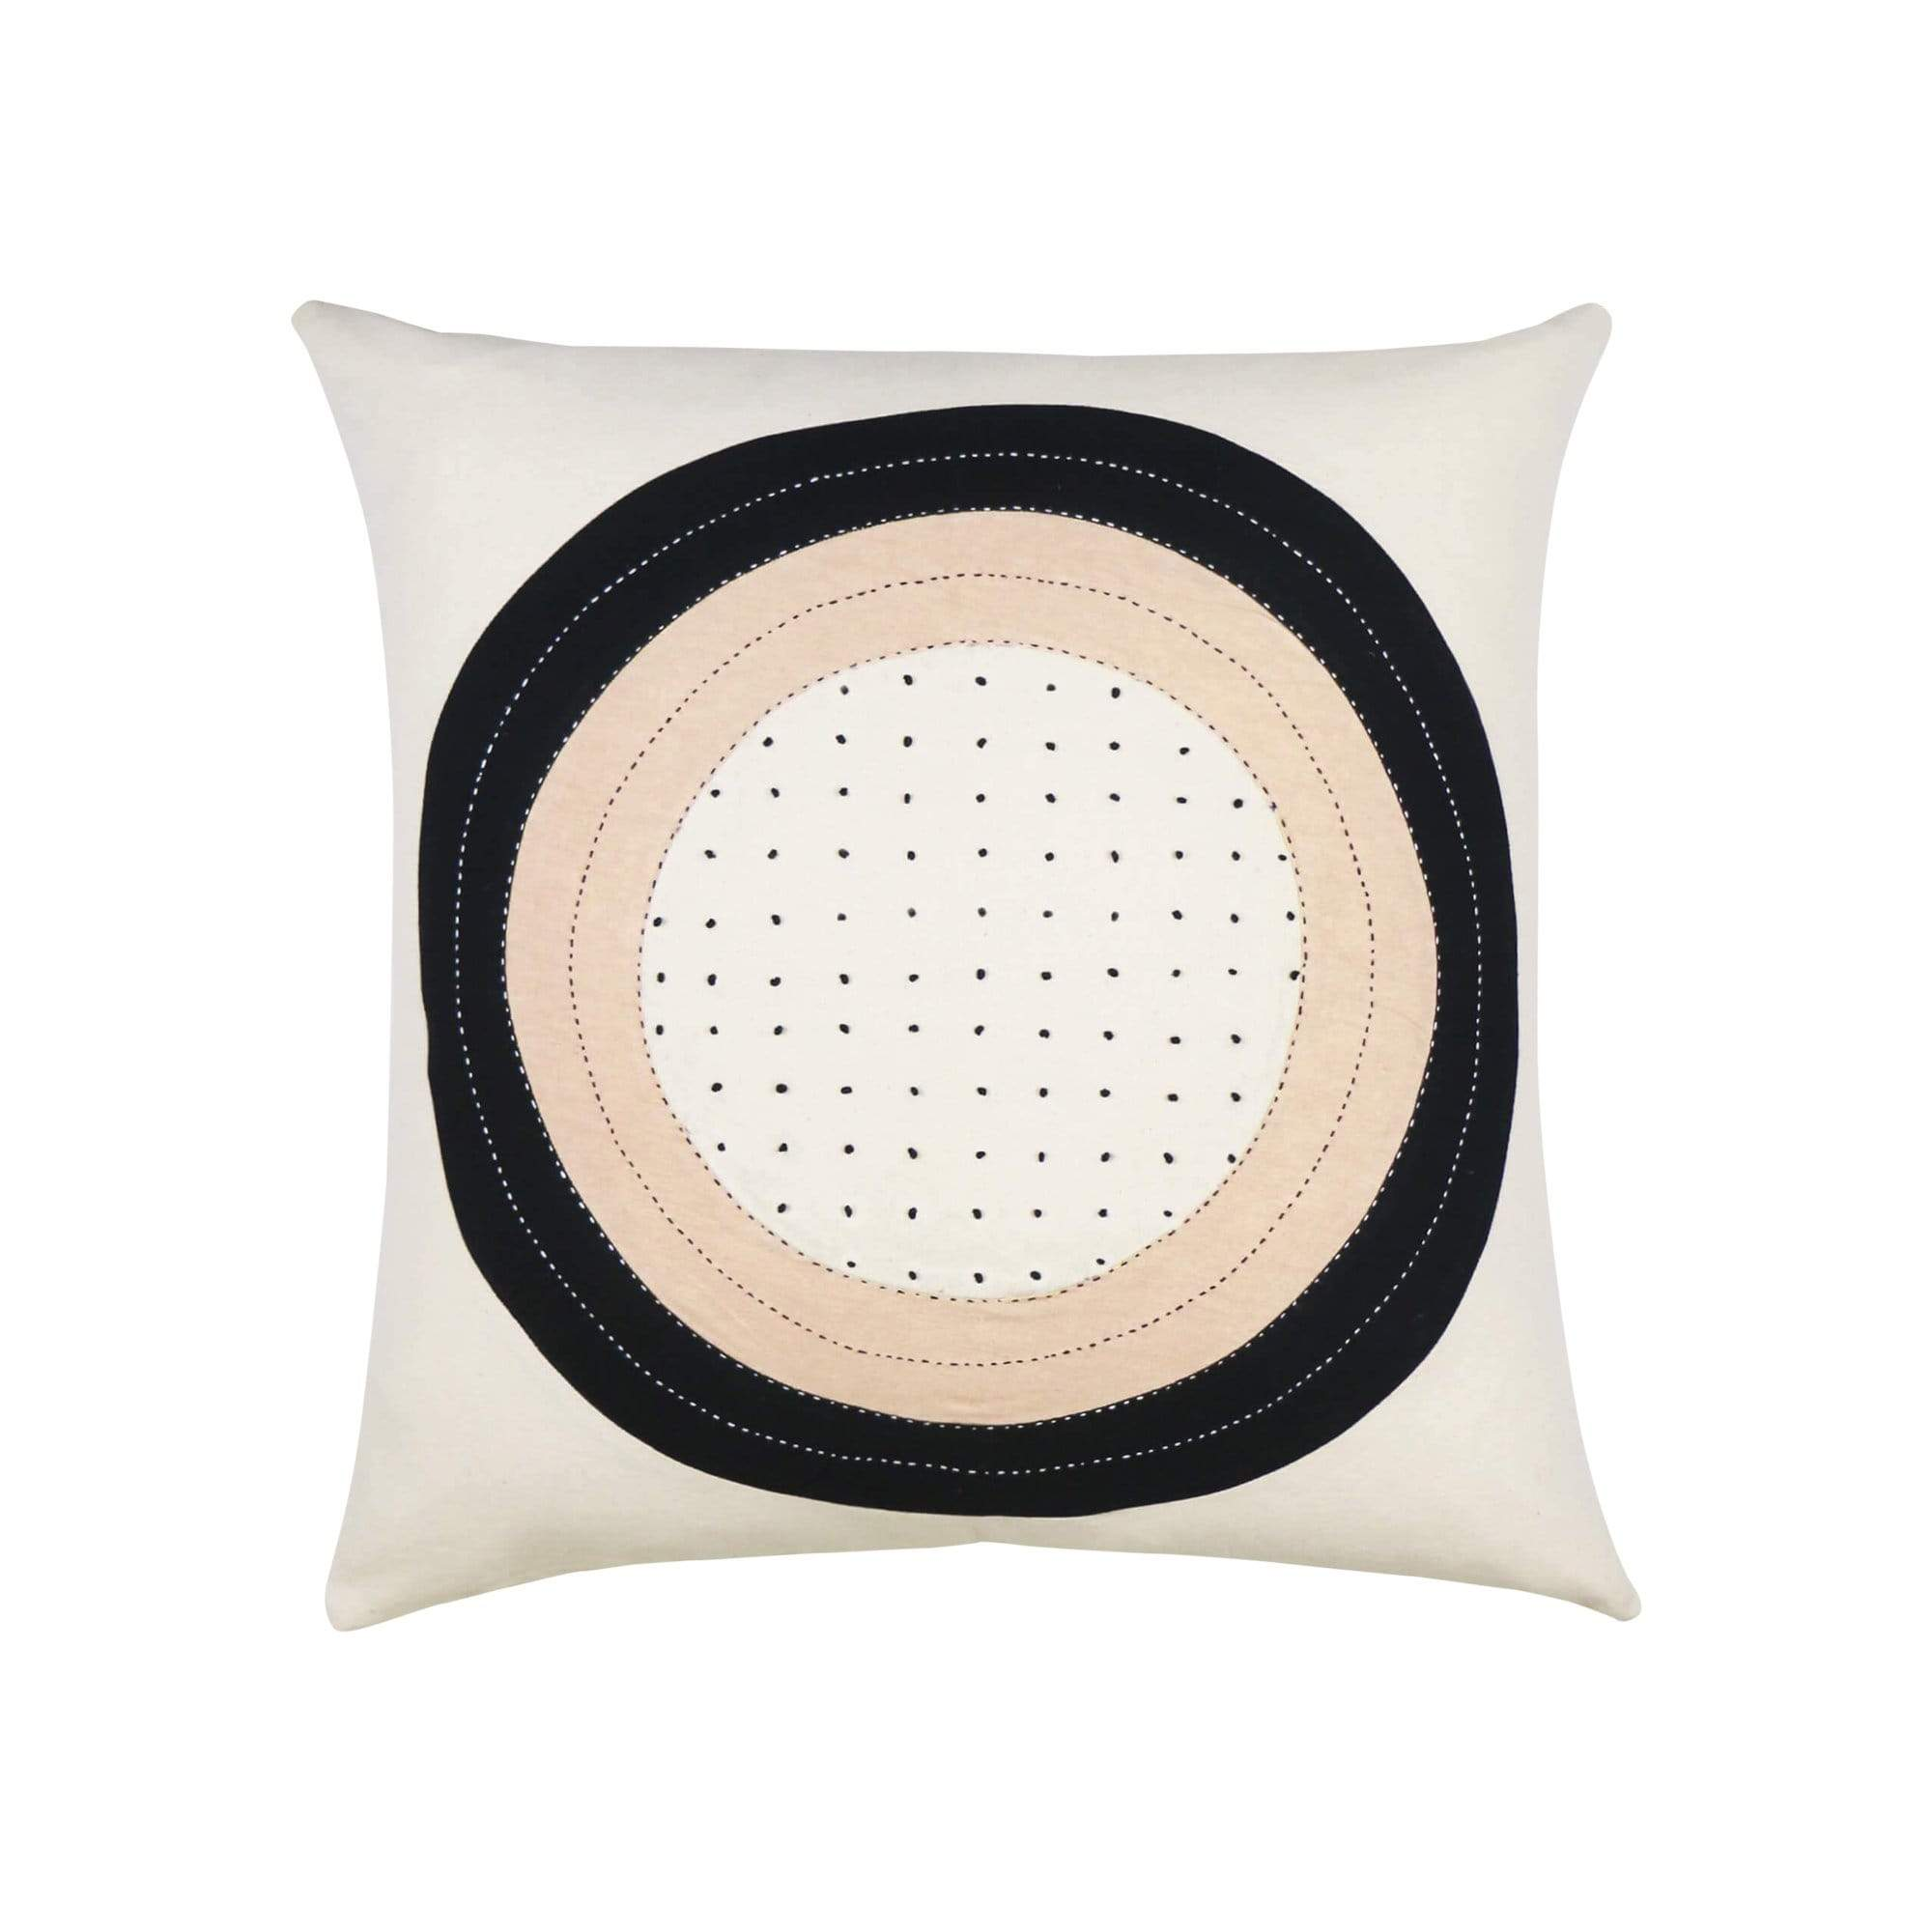 Anchal Project Cushions + Throws Eclipse Dot Throw Pillow